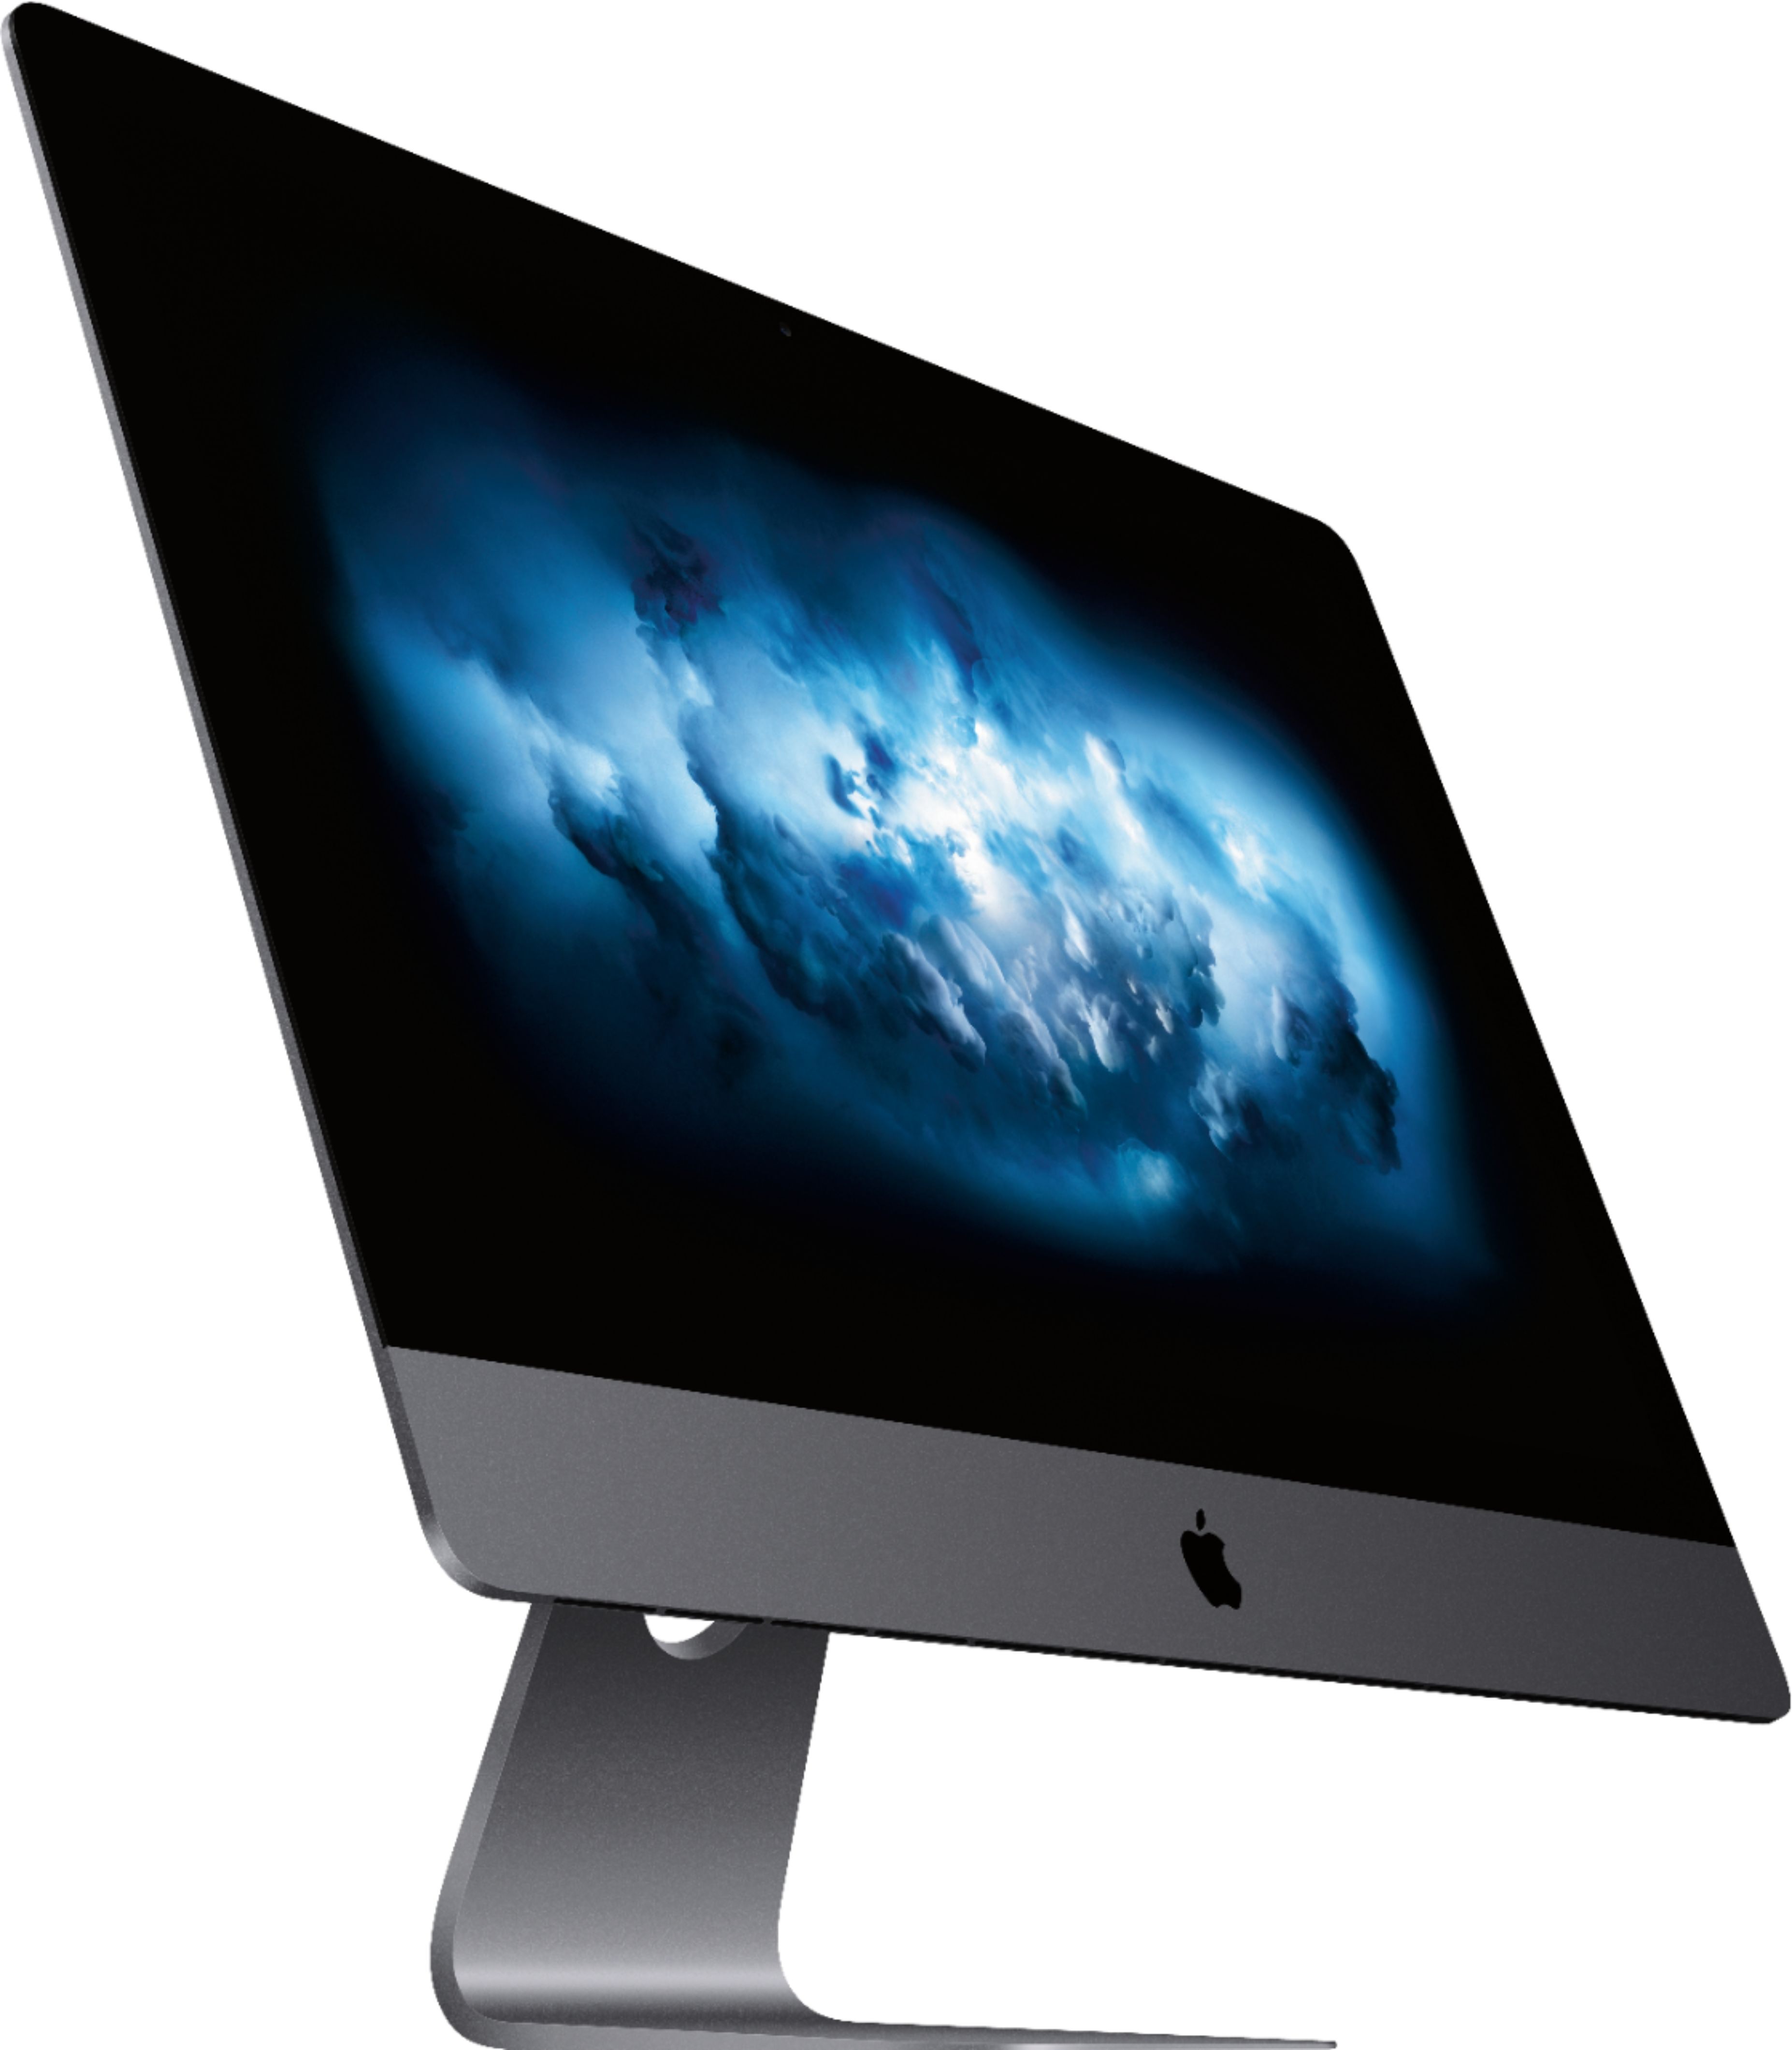 "Angle Zoom. Apple - 27"" iMac Pro with Retina 5K display - Intel Xeon W - 32GB Memory - 1TB Solid State Drive - Black."